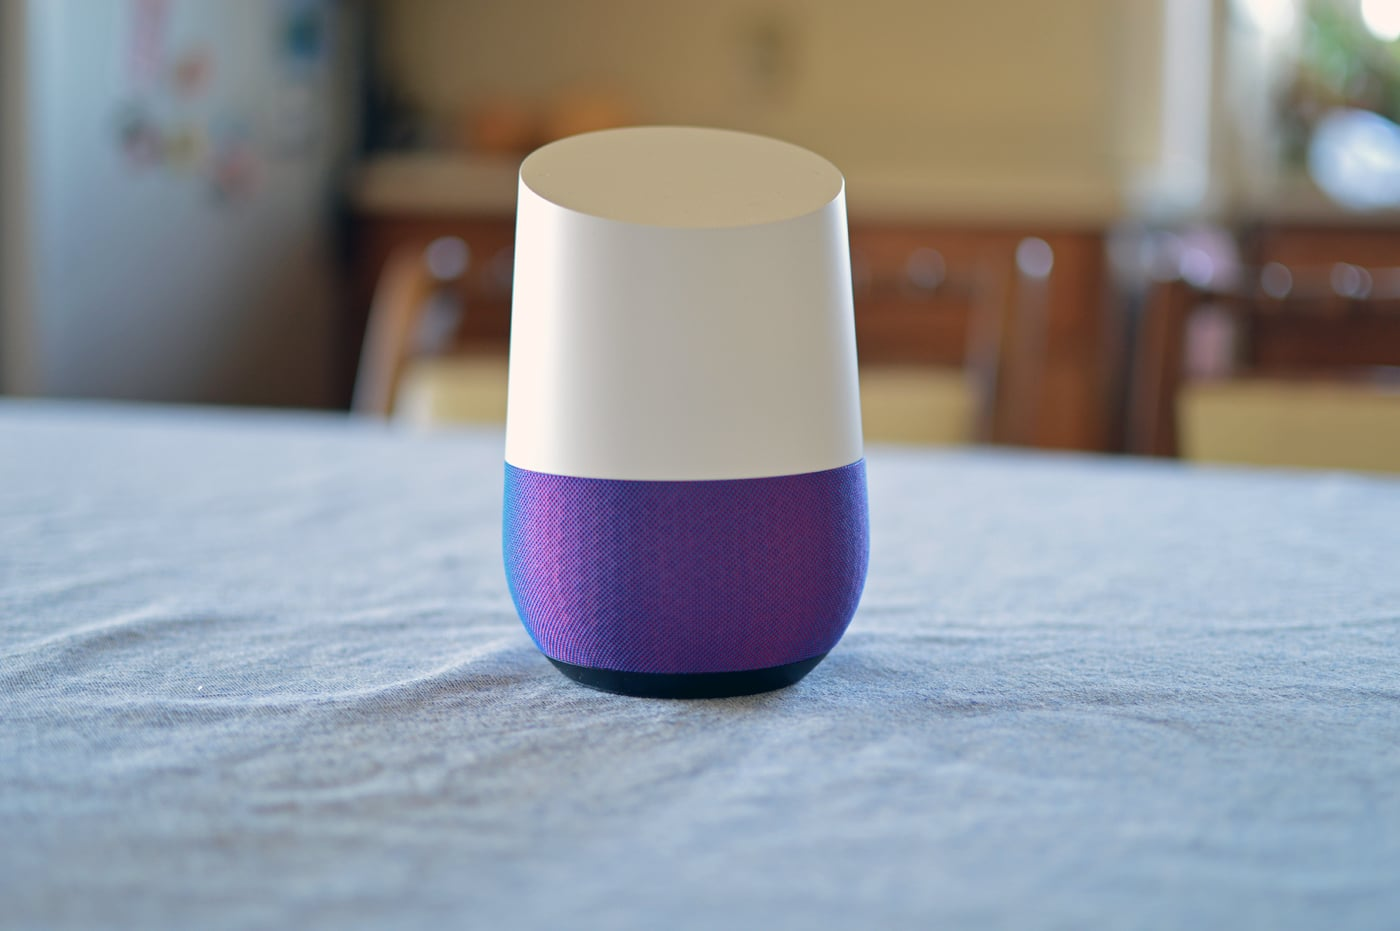 Google Home - Magazine cover